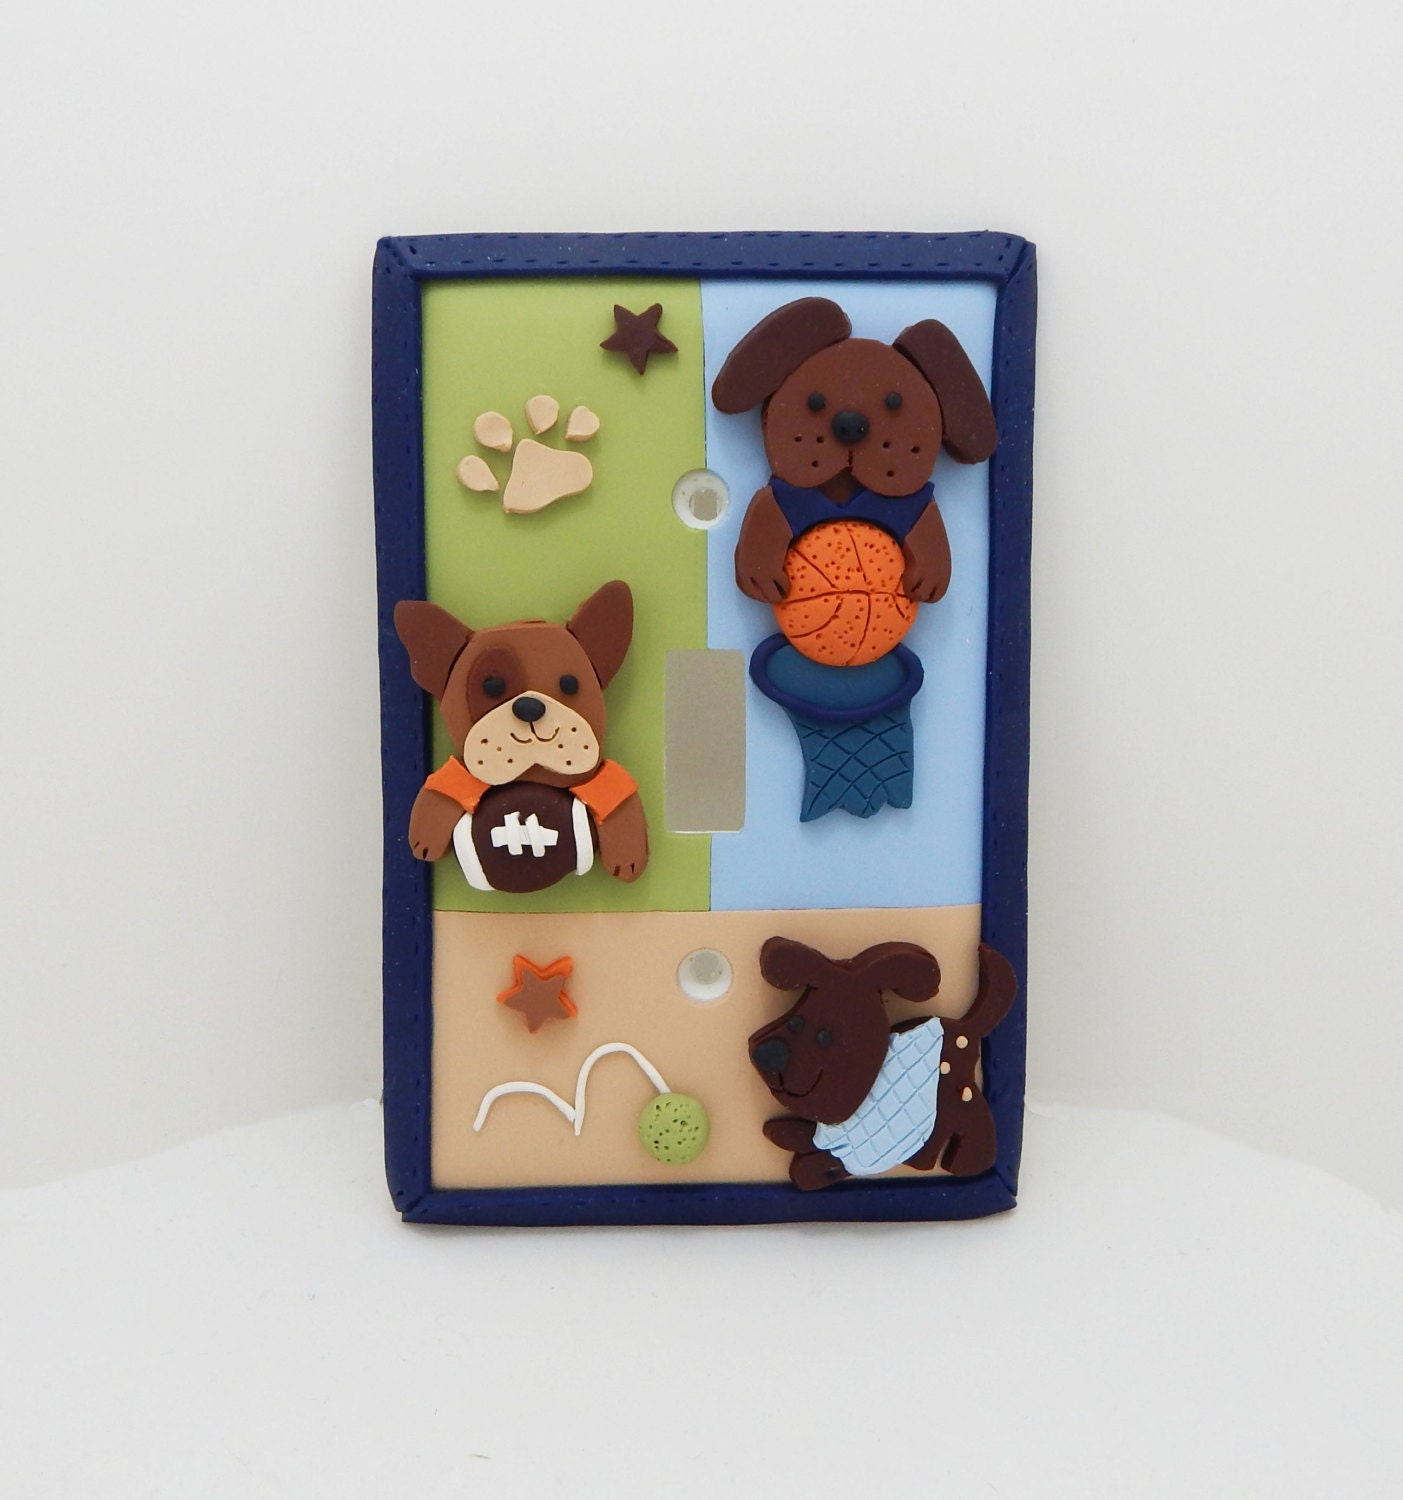 Dog Sports Light Switch Cover Or Outlet Cover Childrens